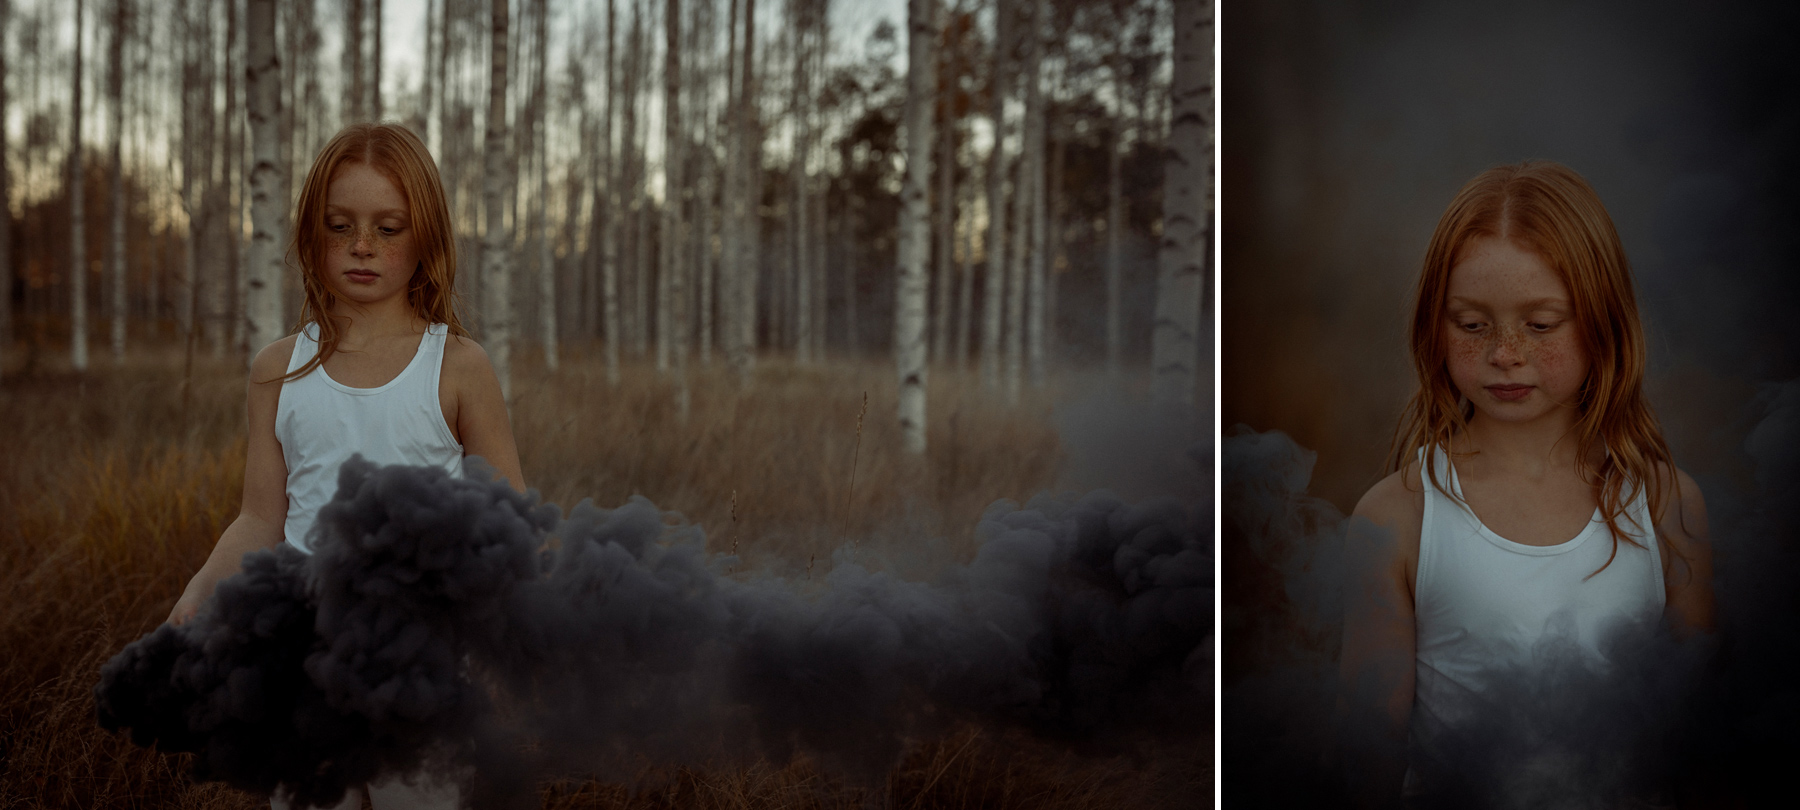 smoke bombs red haired girl